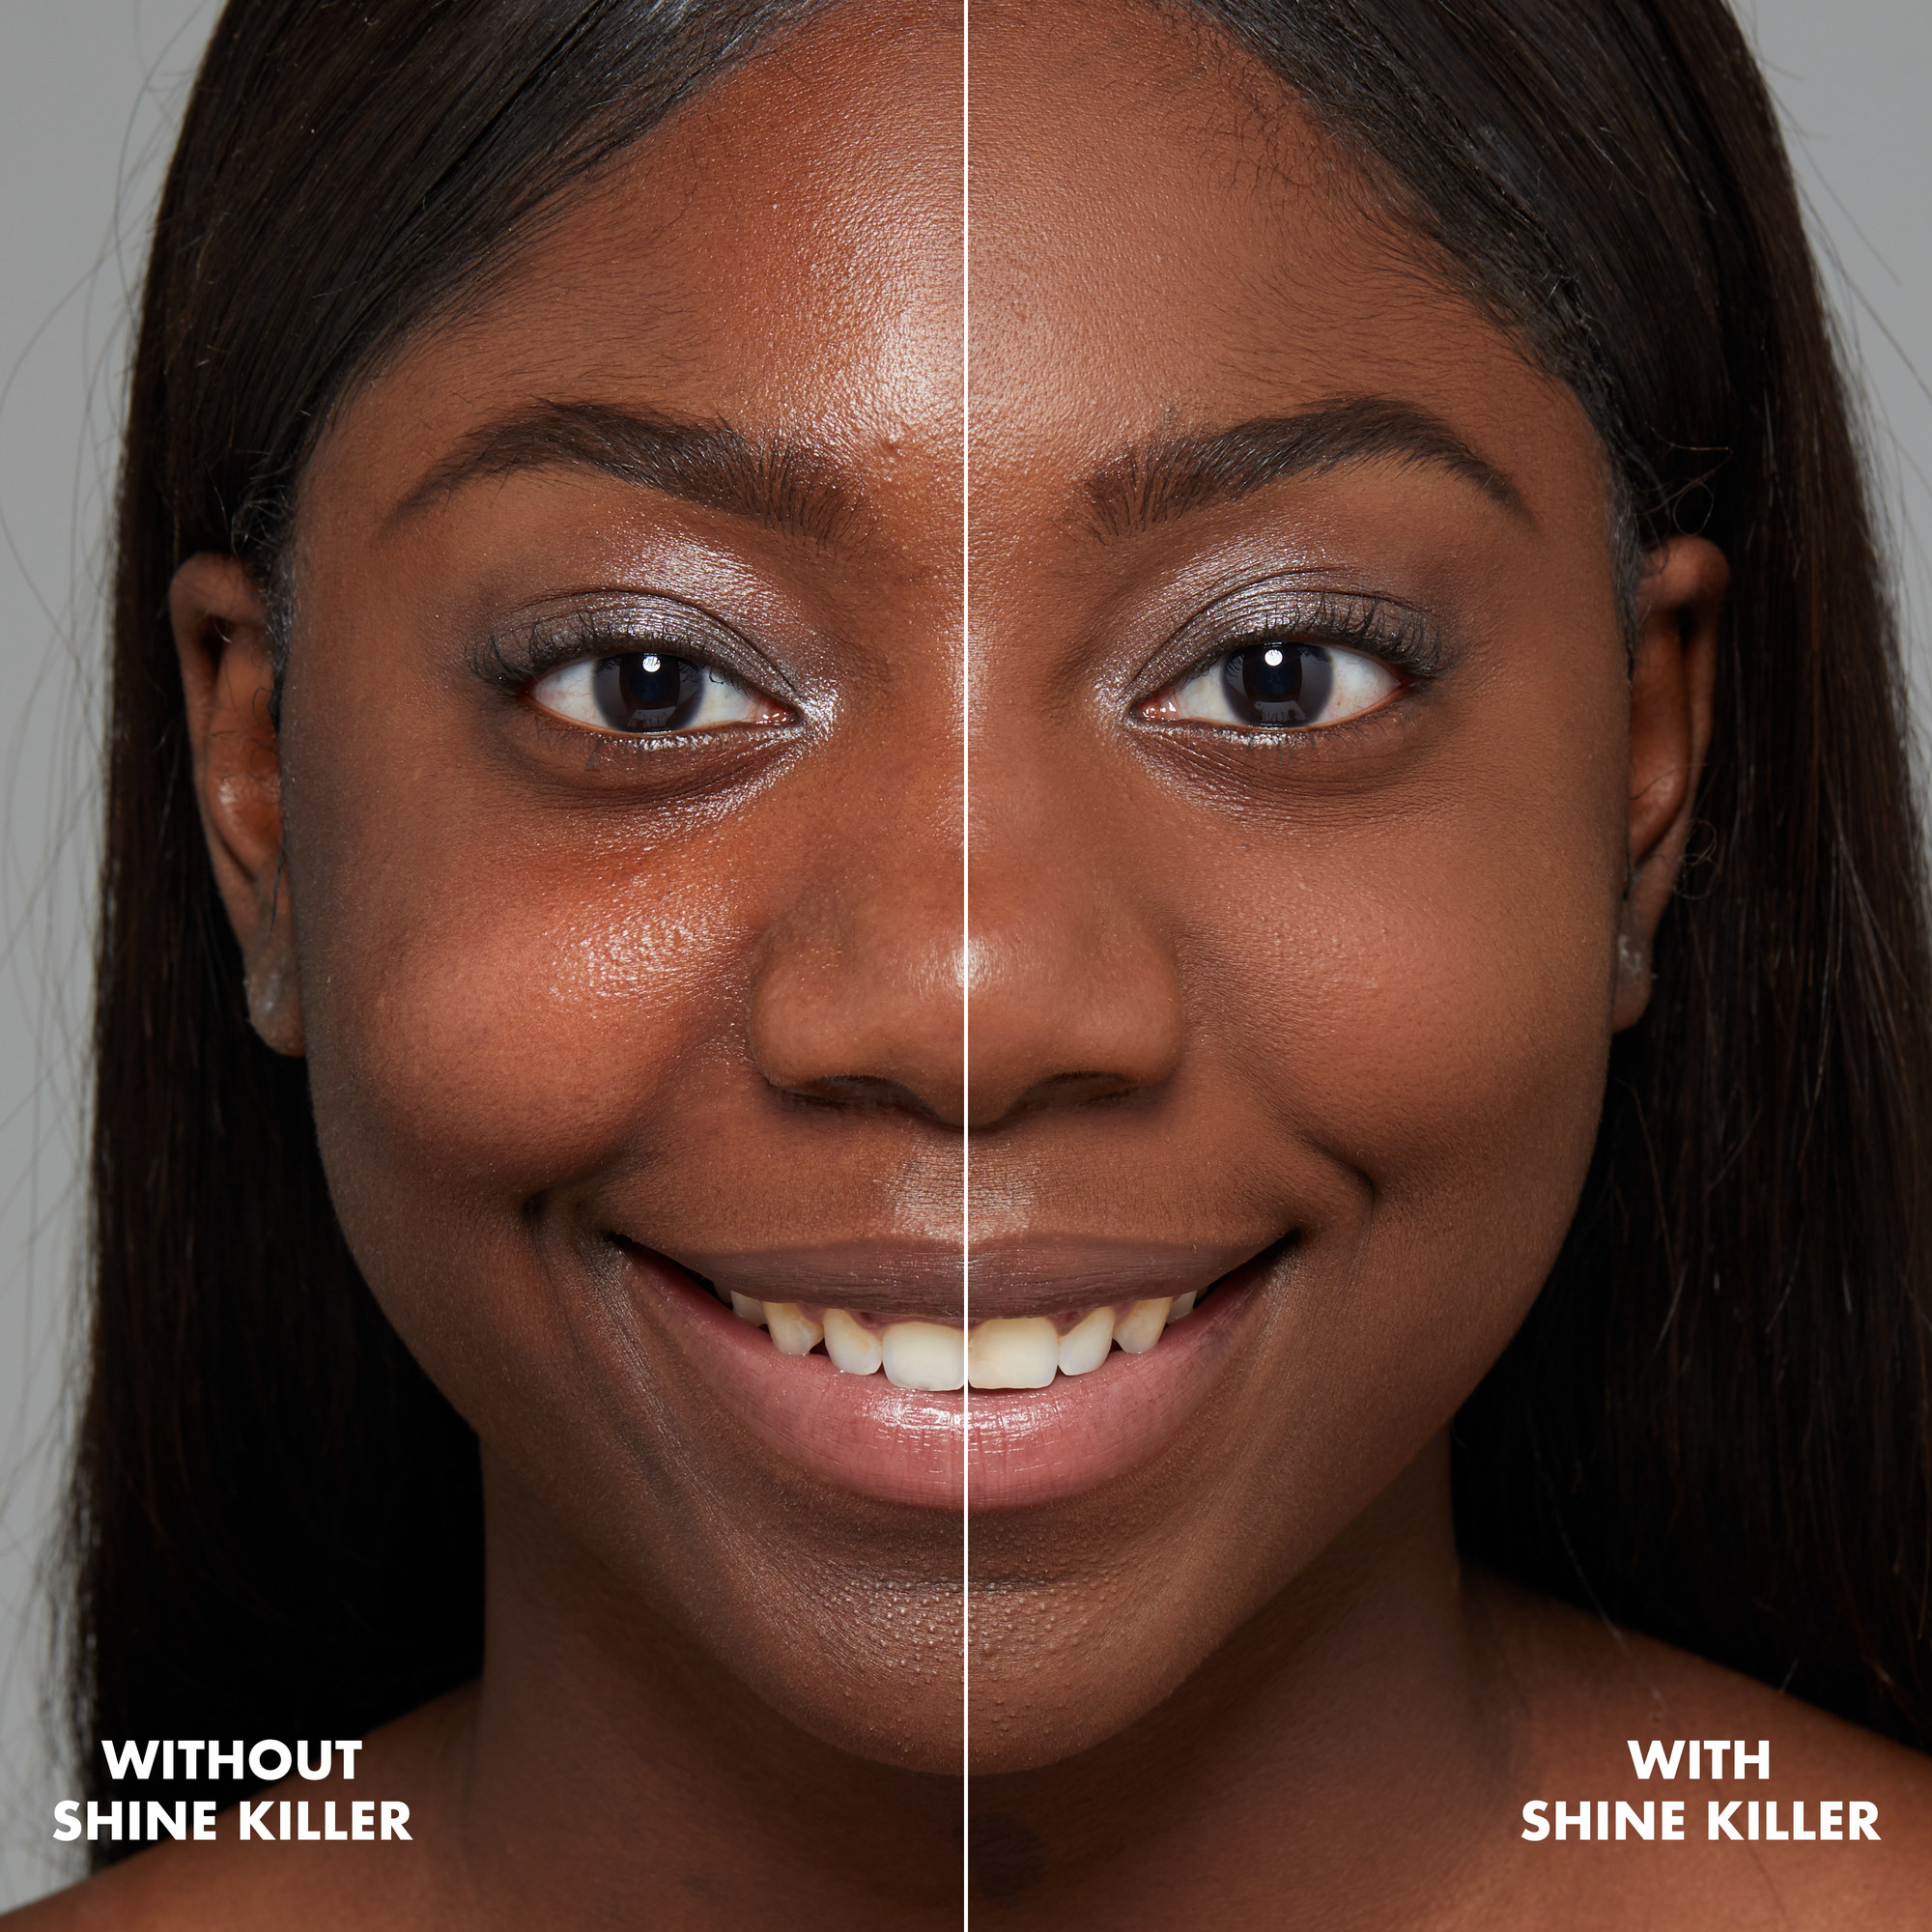 Model's before-and-after to show her face shiny and then matte